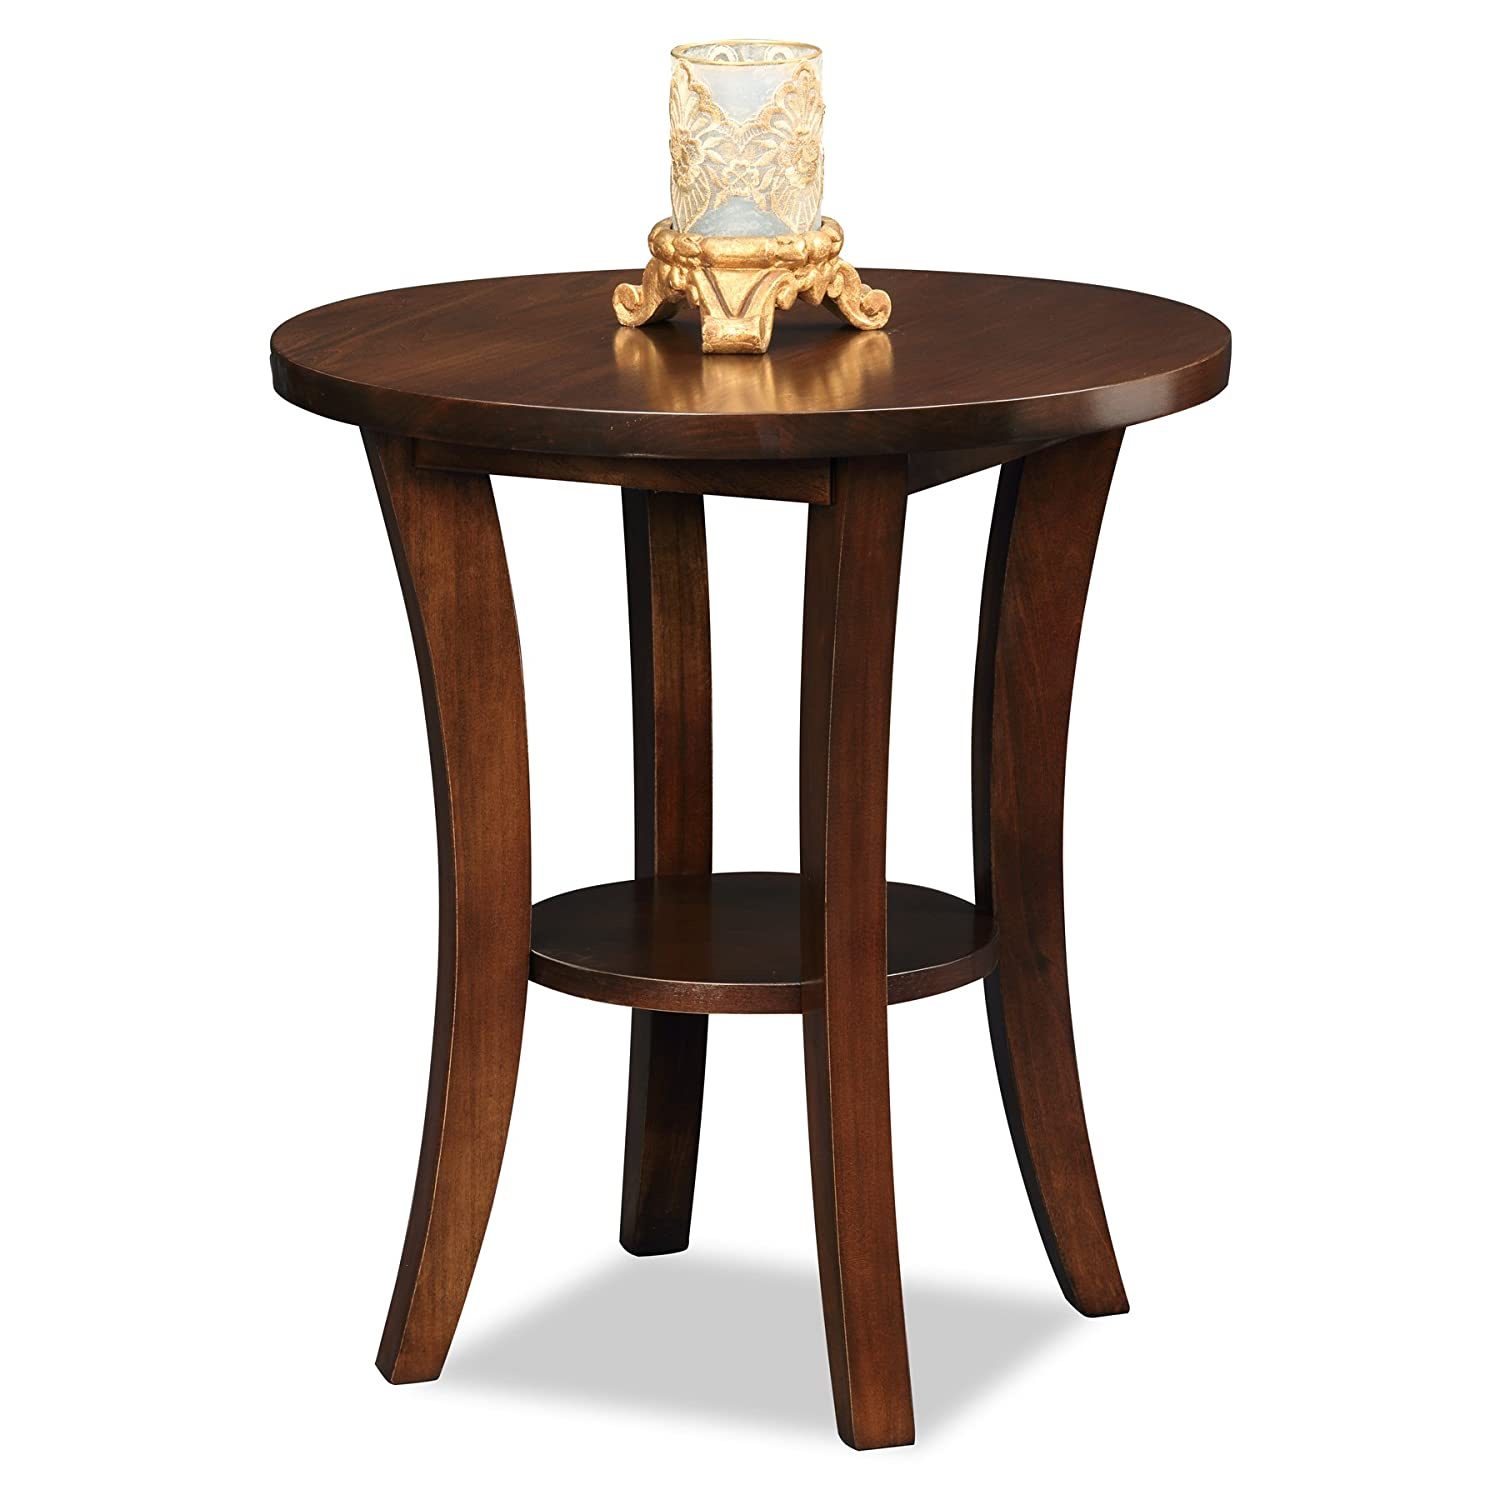 Amazon com  Leick Furniture Boa Collection Solid Wood Round Side End Table   Kitchen   Dining. Amazon com  Leick Furniture Boa Collection Solid Wood Round Side